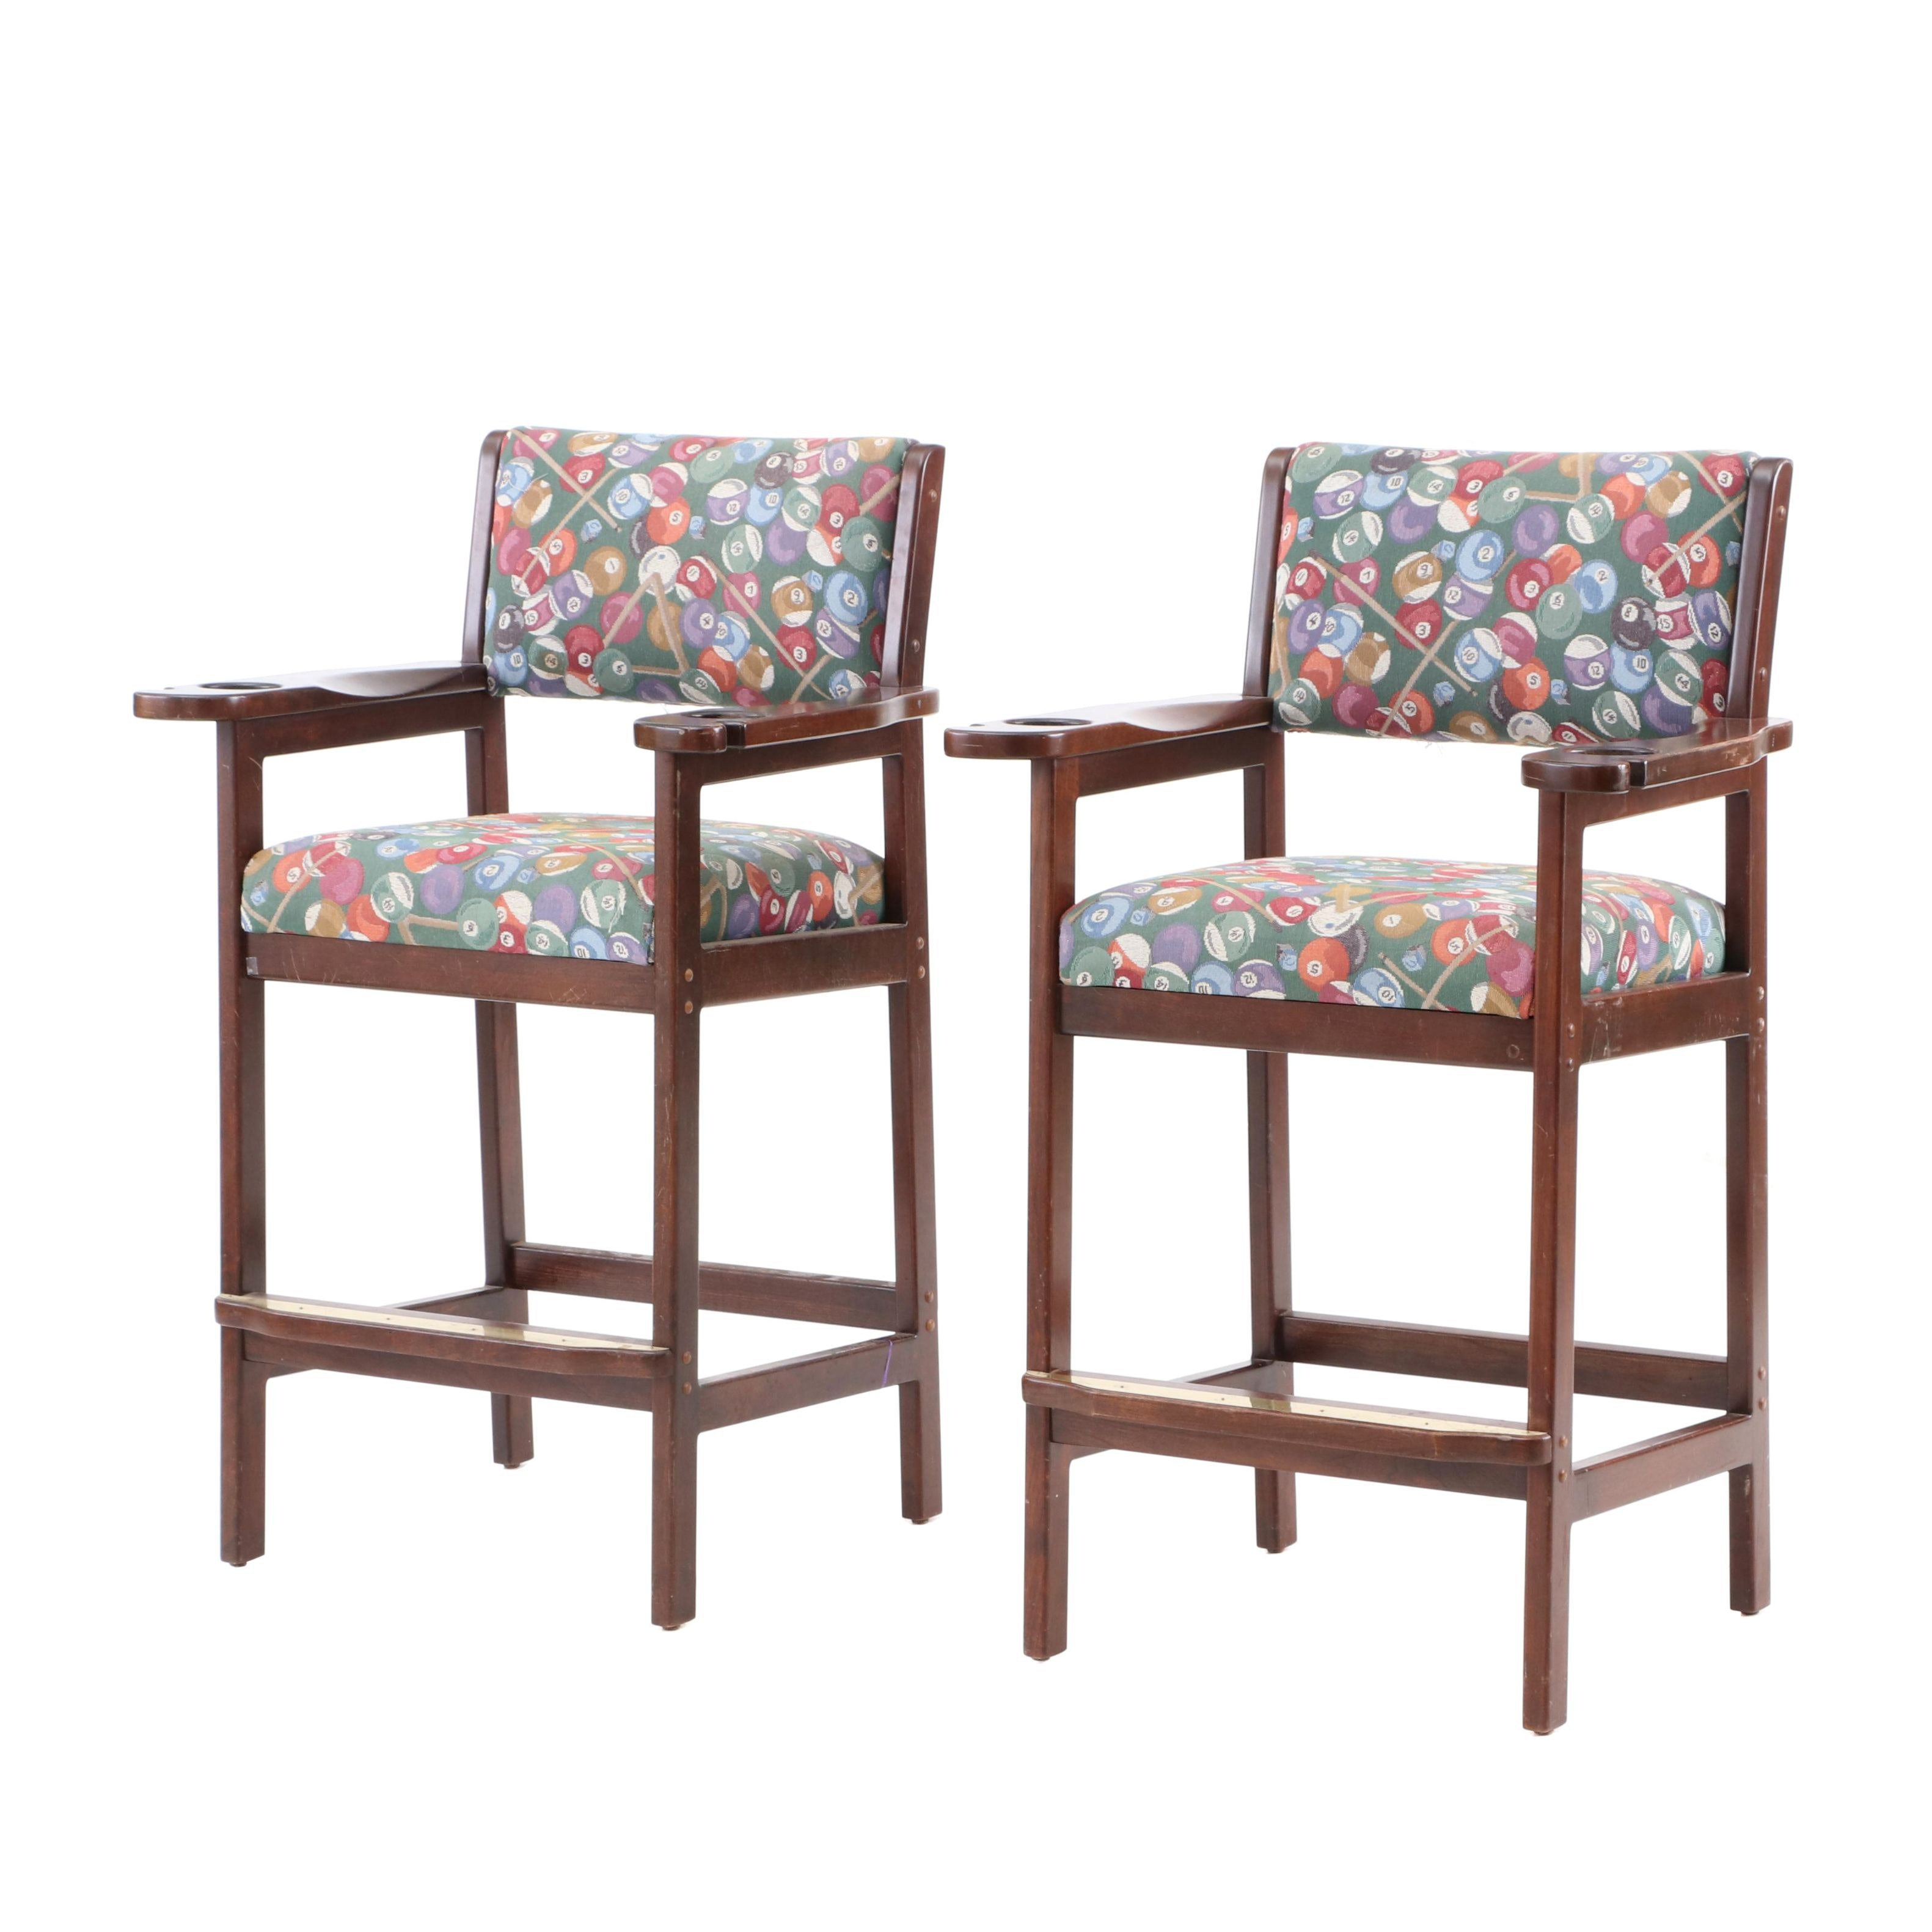 Pair of High Bar Chairs From the Reds Clubhouse